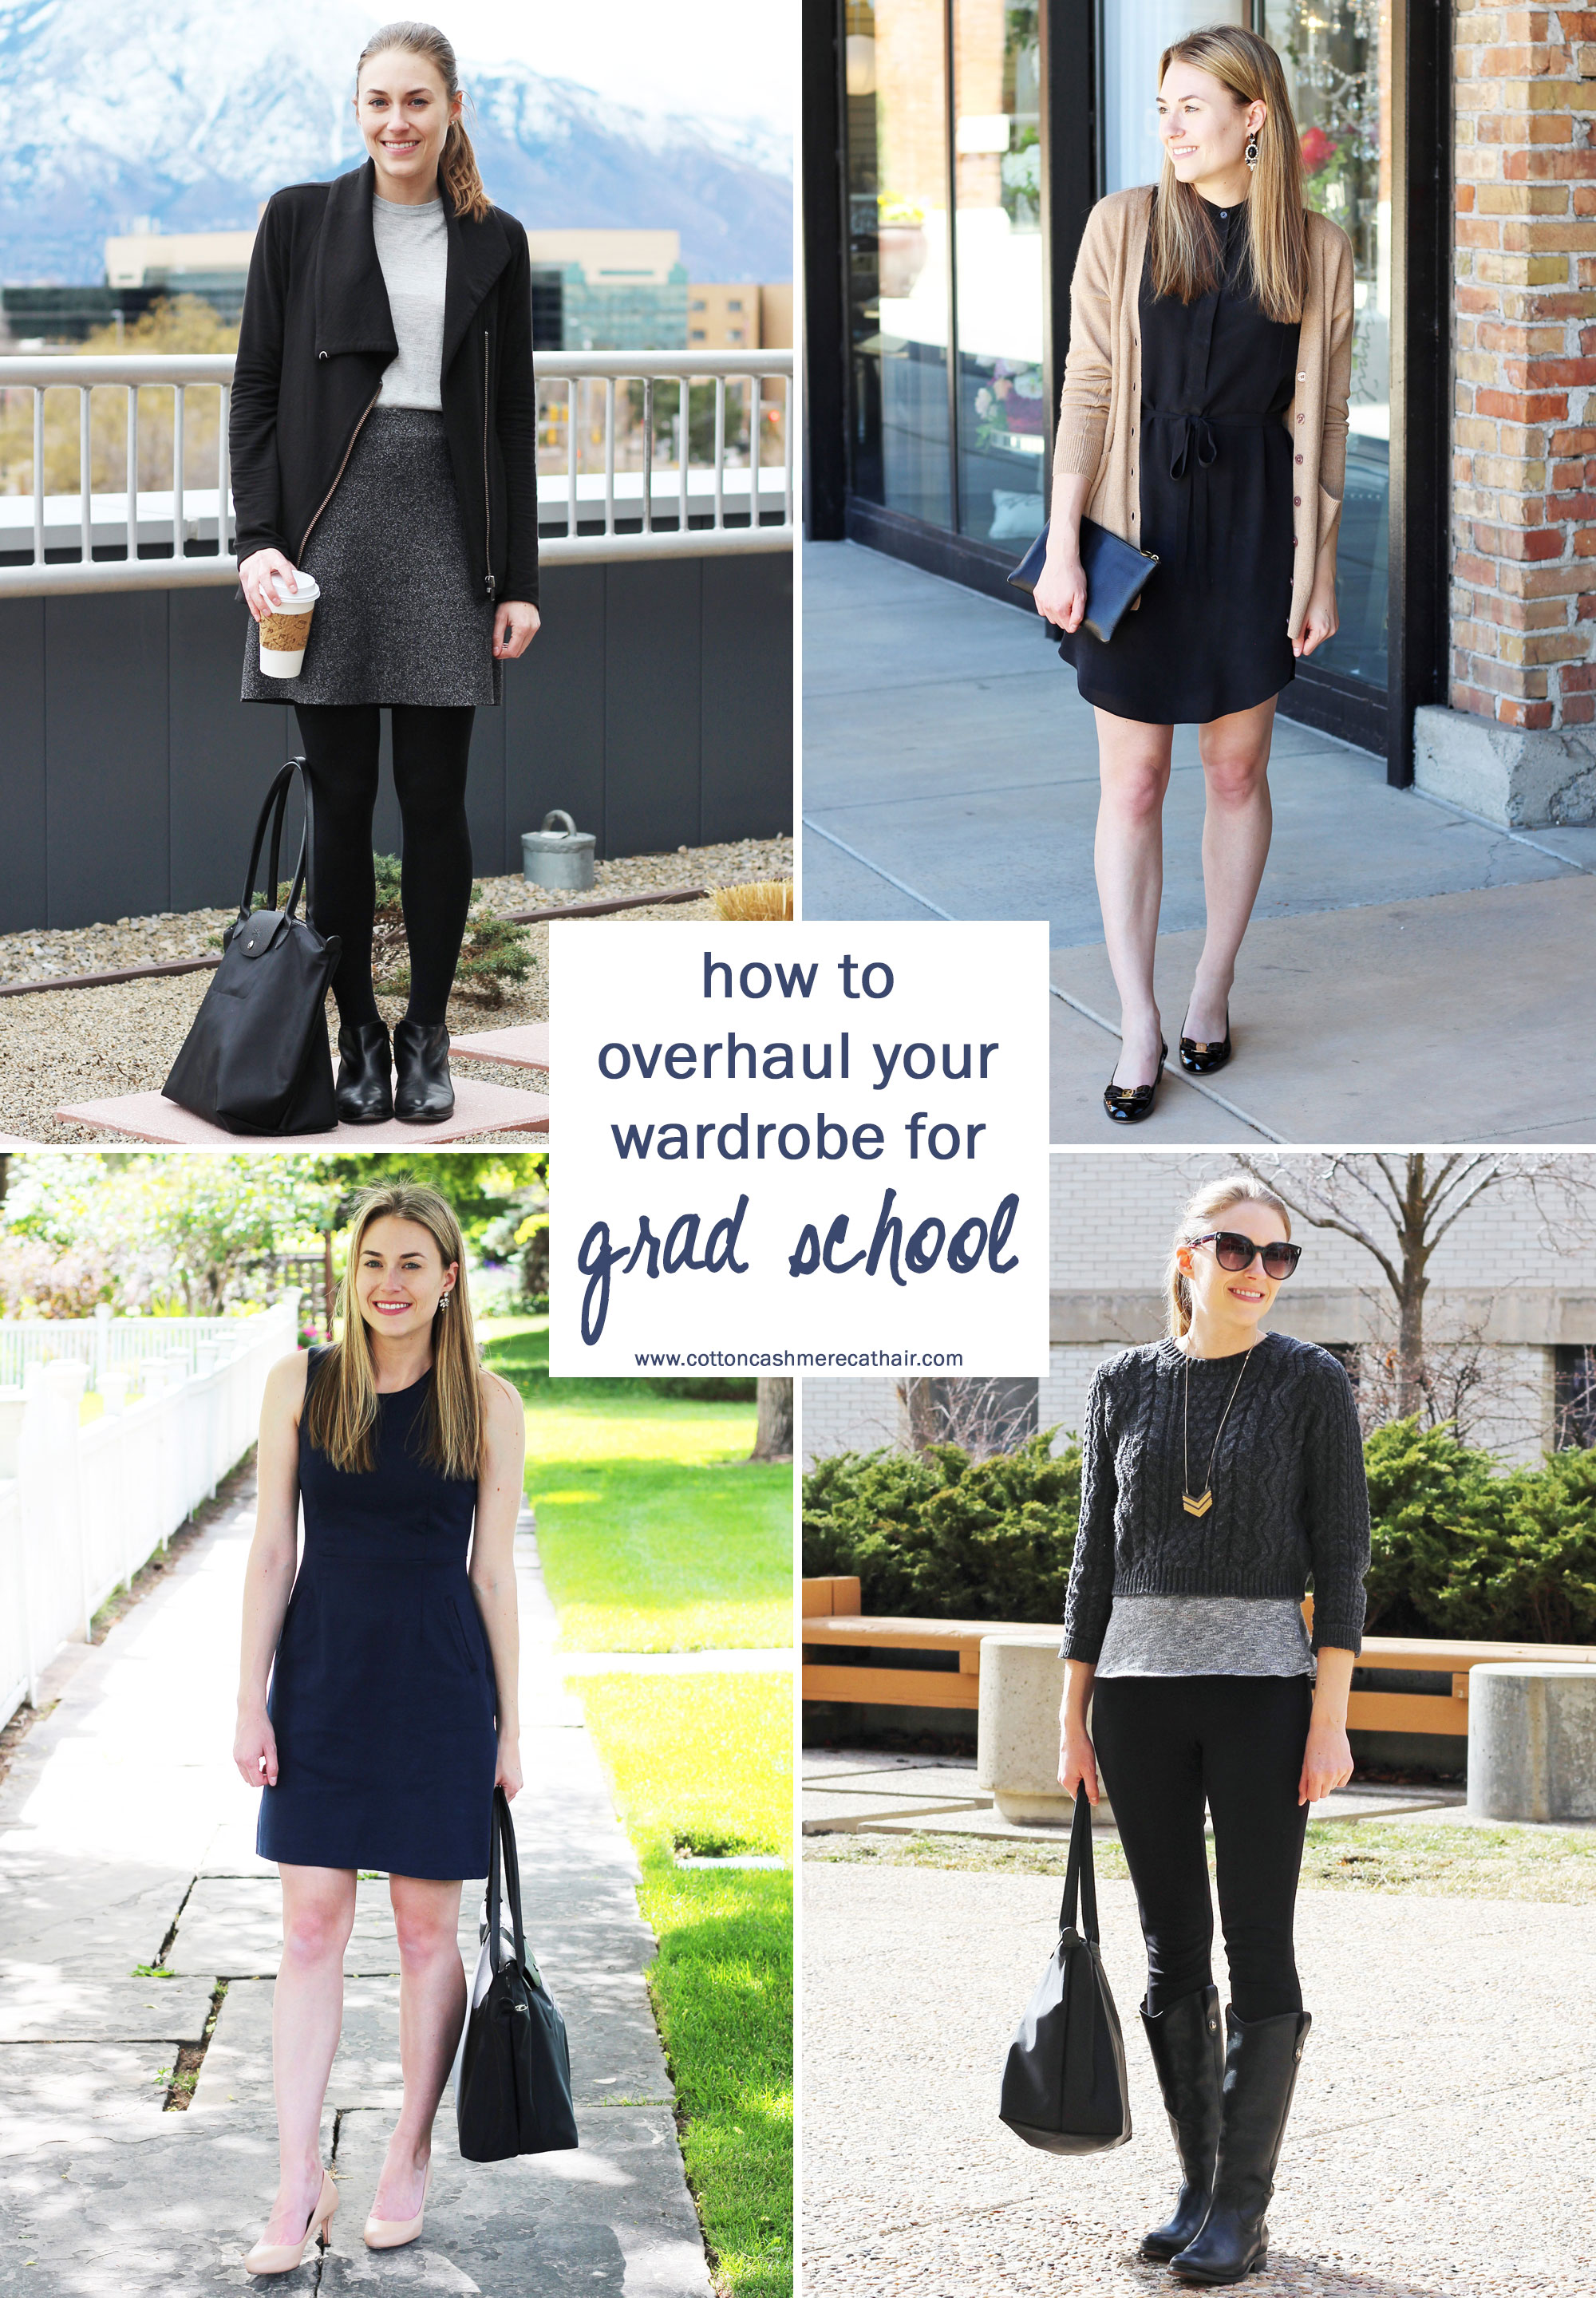 How to overhaul your wardrobe for grad school — Cotton Cashmere Cat Hair